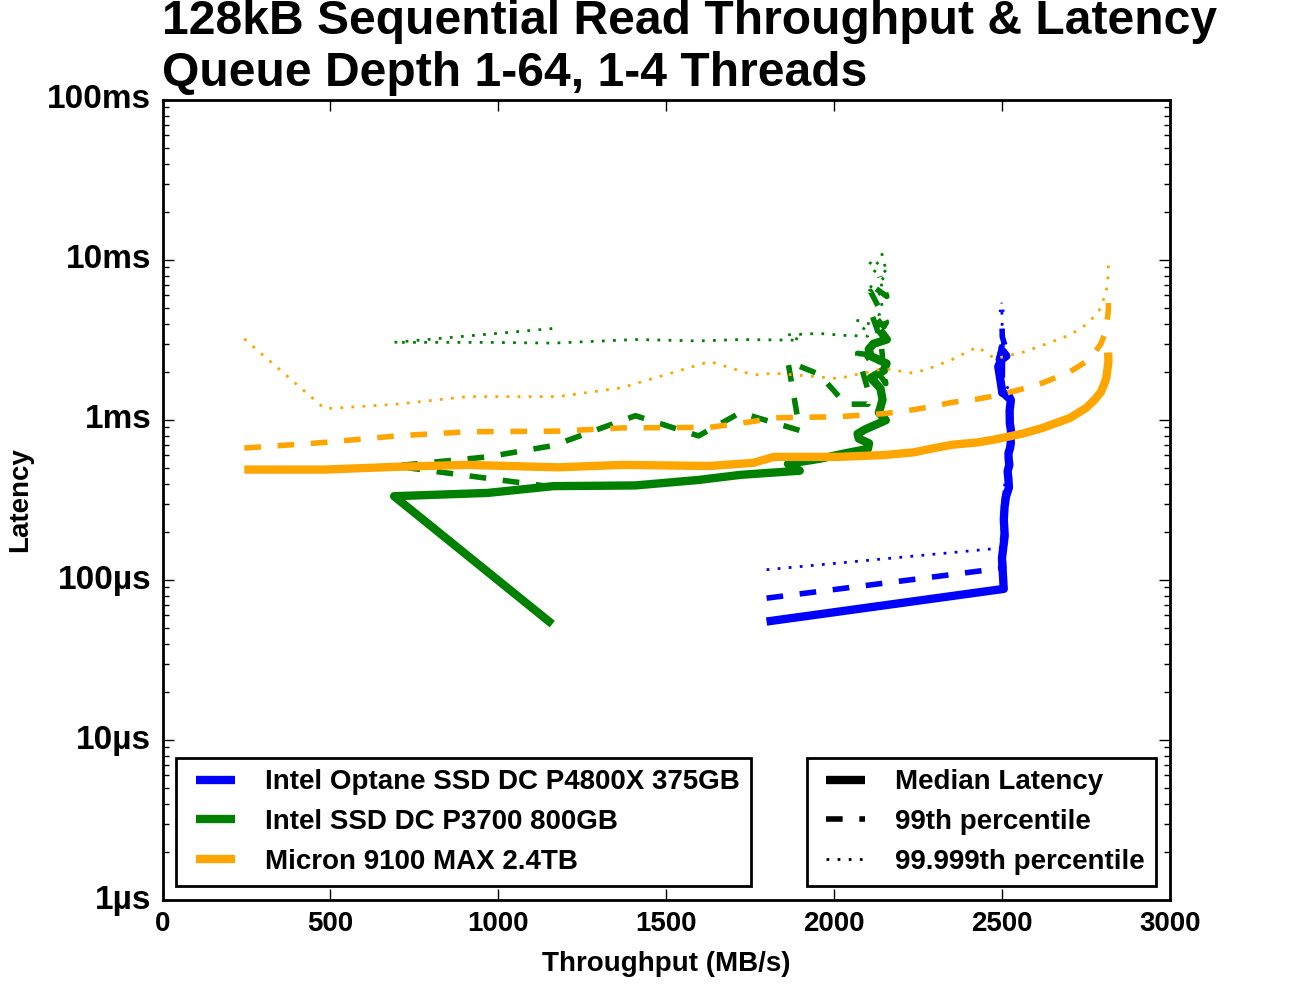 Sequential Access Performance The Intel Optane Ssd Dc P4800x Thread 4way Tele Switch Diagram Each Is Reading Sequentially But From A Different Region Of Drive So Read Commands Receives Are Not Entirely Sorted By Logical